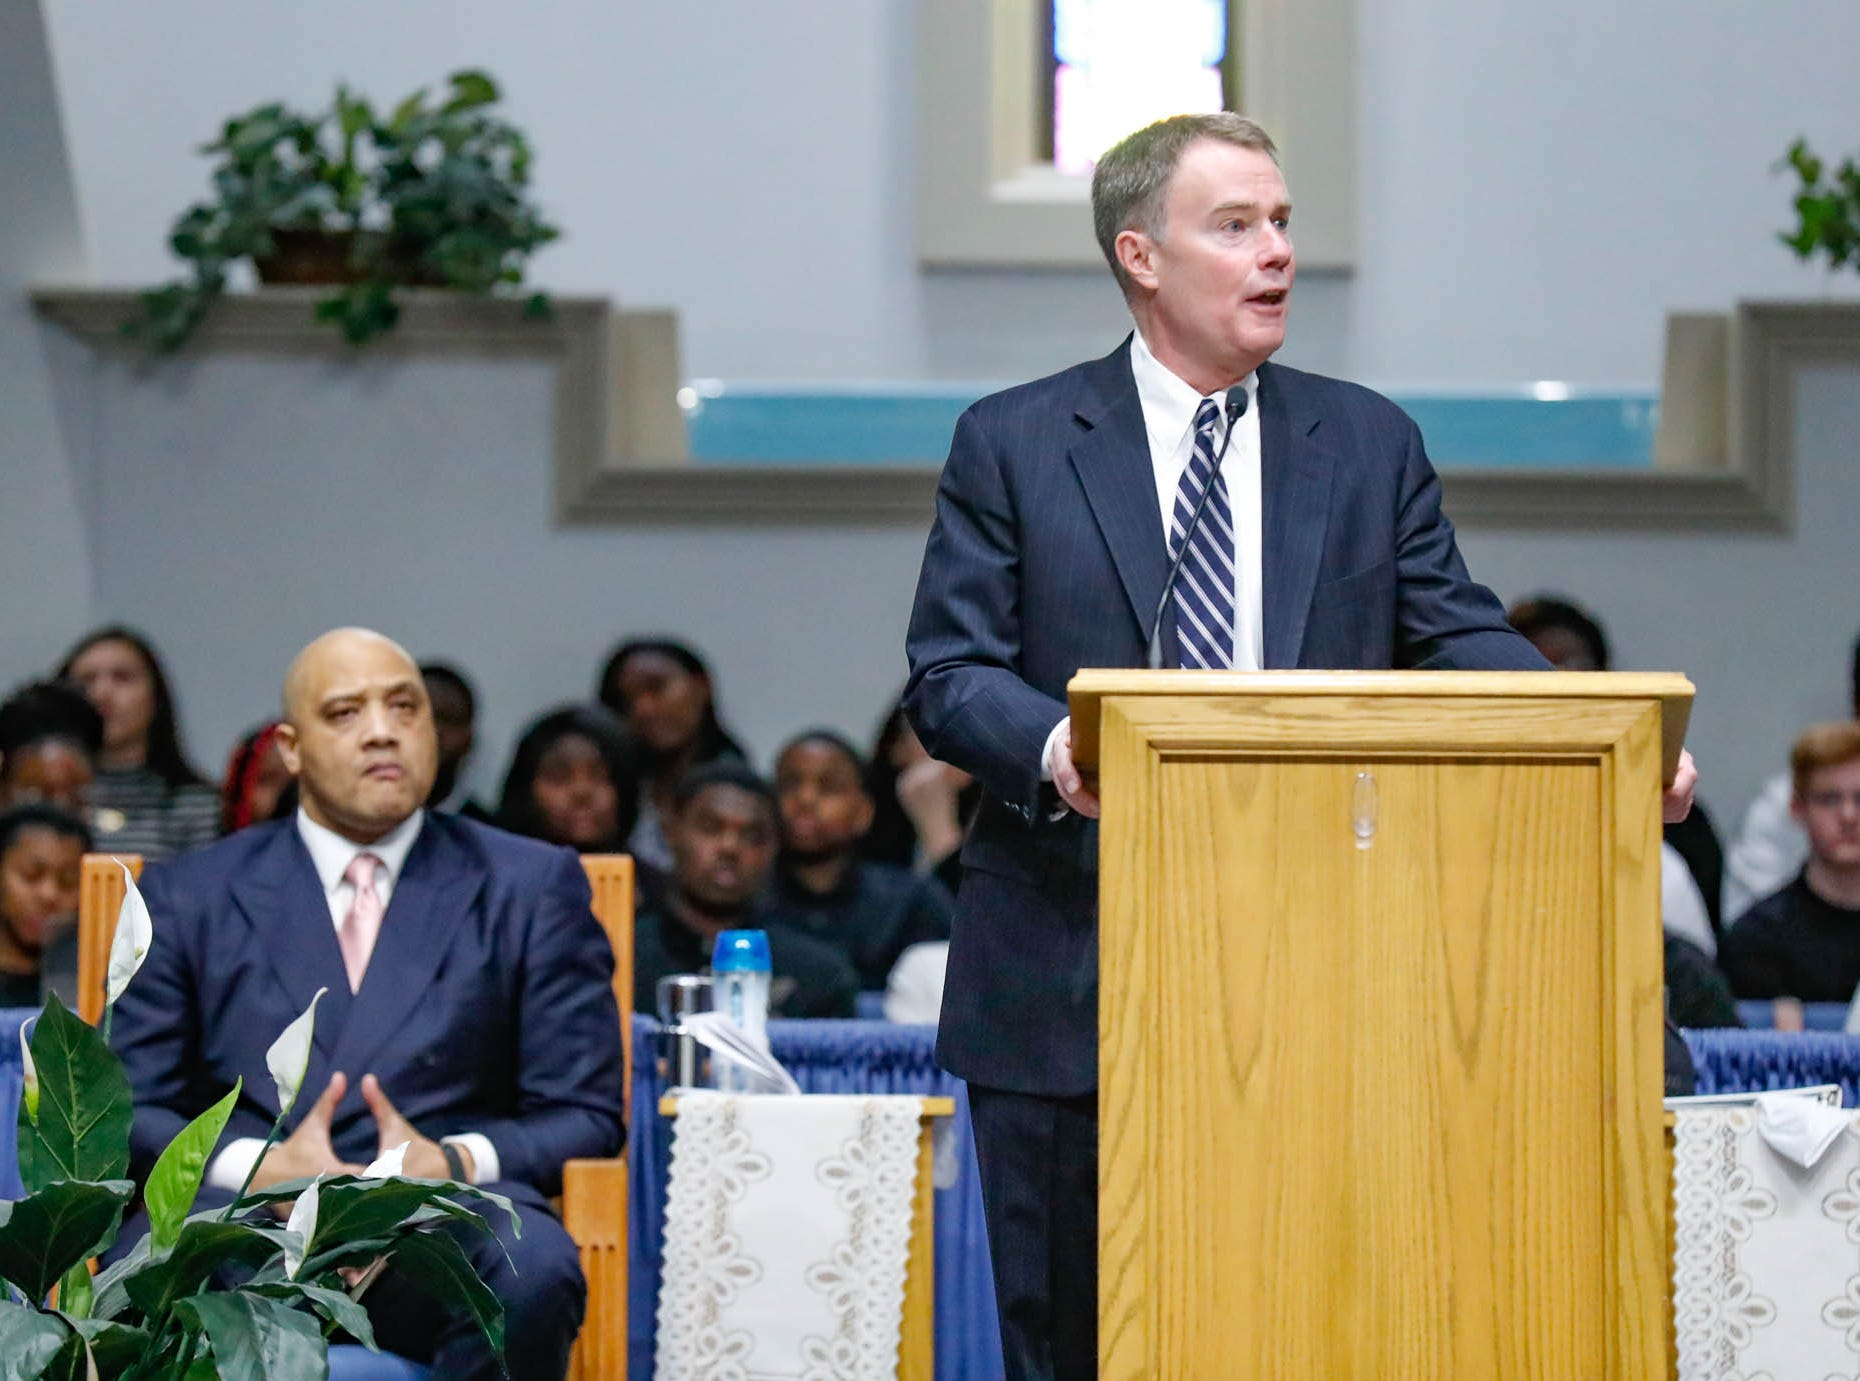 """Indianapolis Mayor Joe Hogsett speaks during the annual Steward Speakers Lecture Series event, held at Olivet Missionary Baptist Church in Indianapolis on Thursday, Feb. 21, 2019. This years theme was """"Year of the woman""""."""